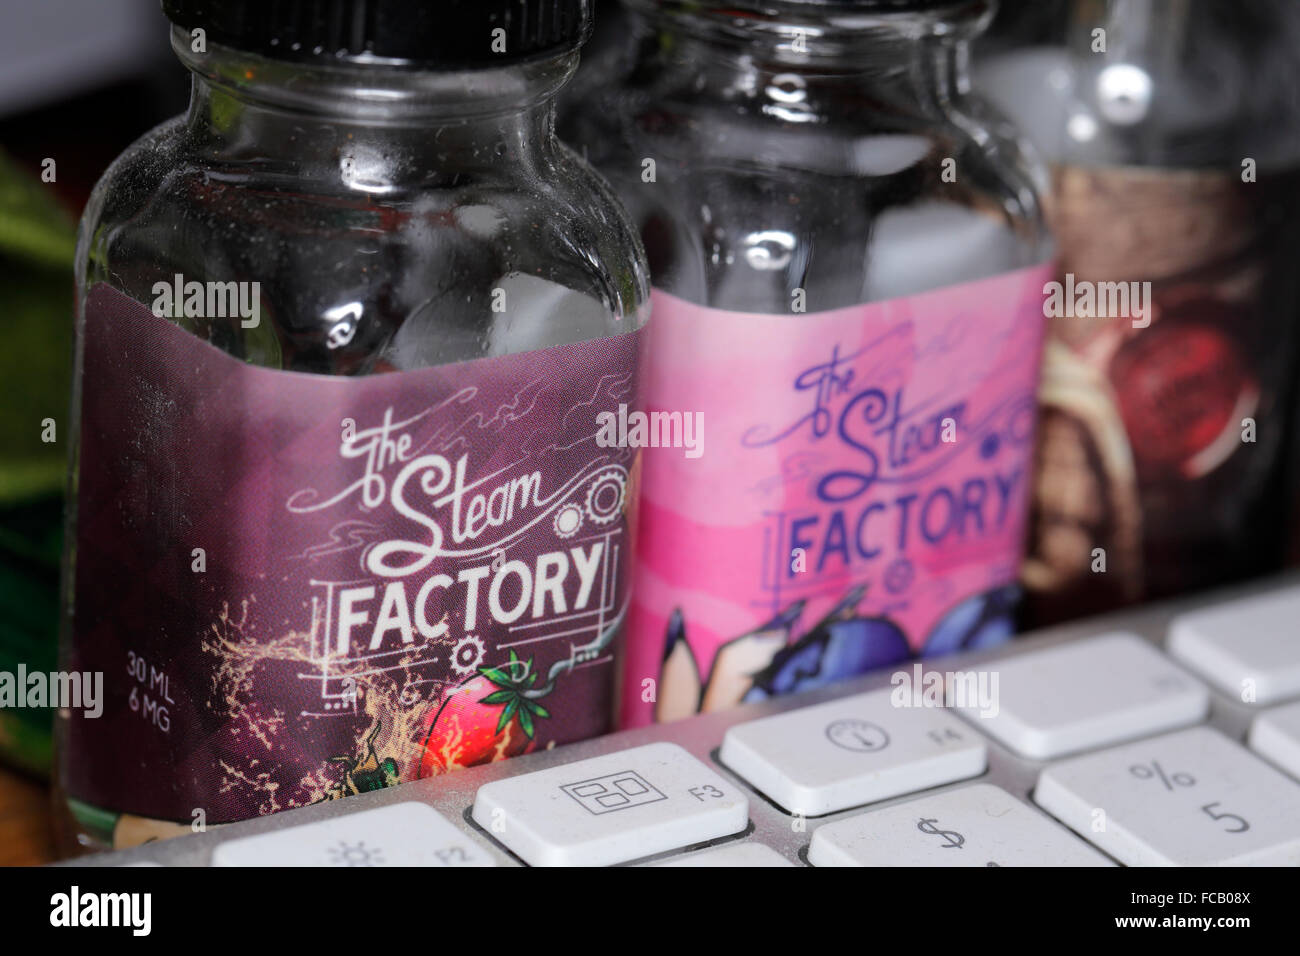 The Steam Factory e-juice bottles. - Stock Image